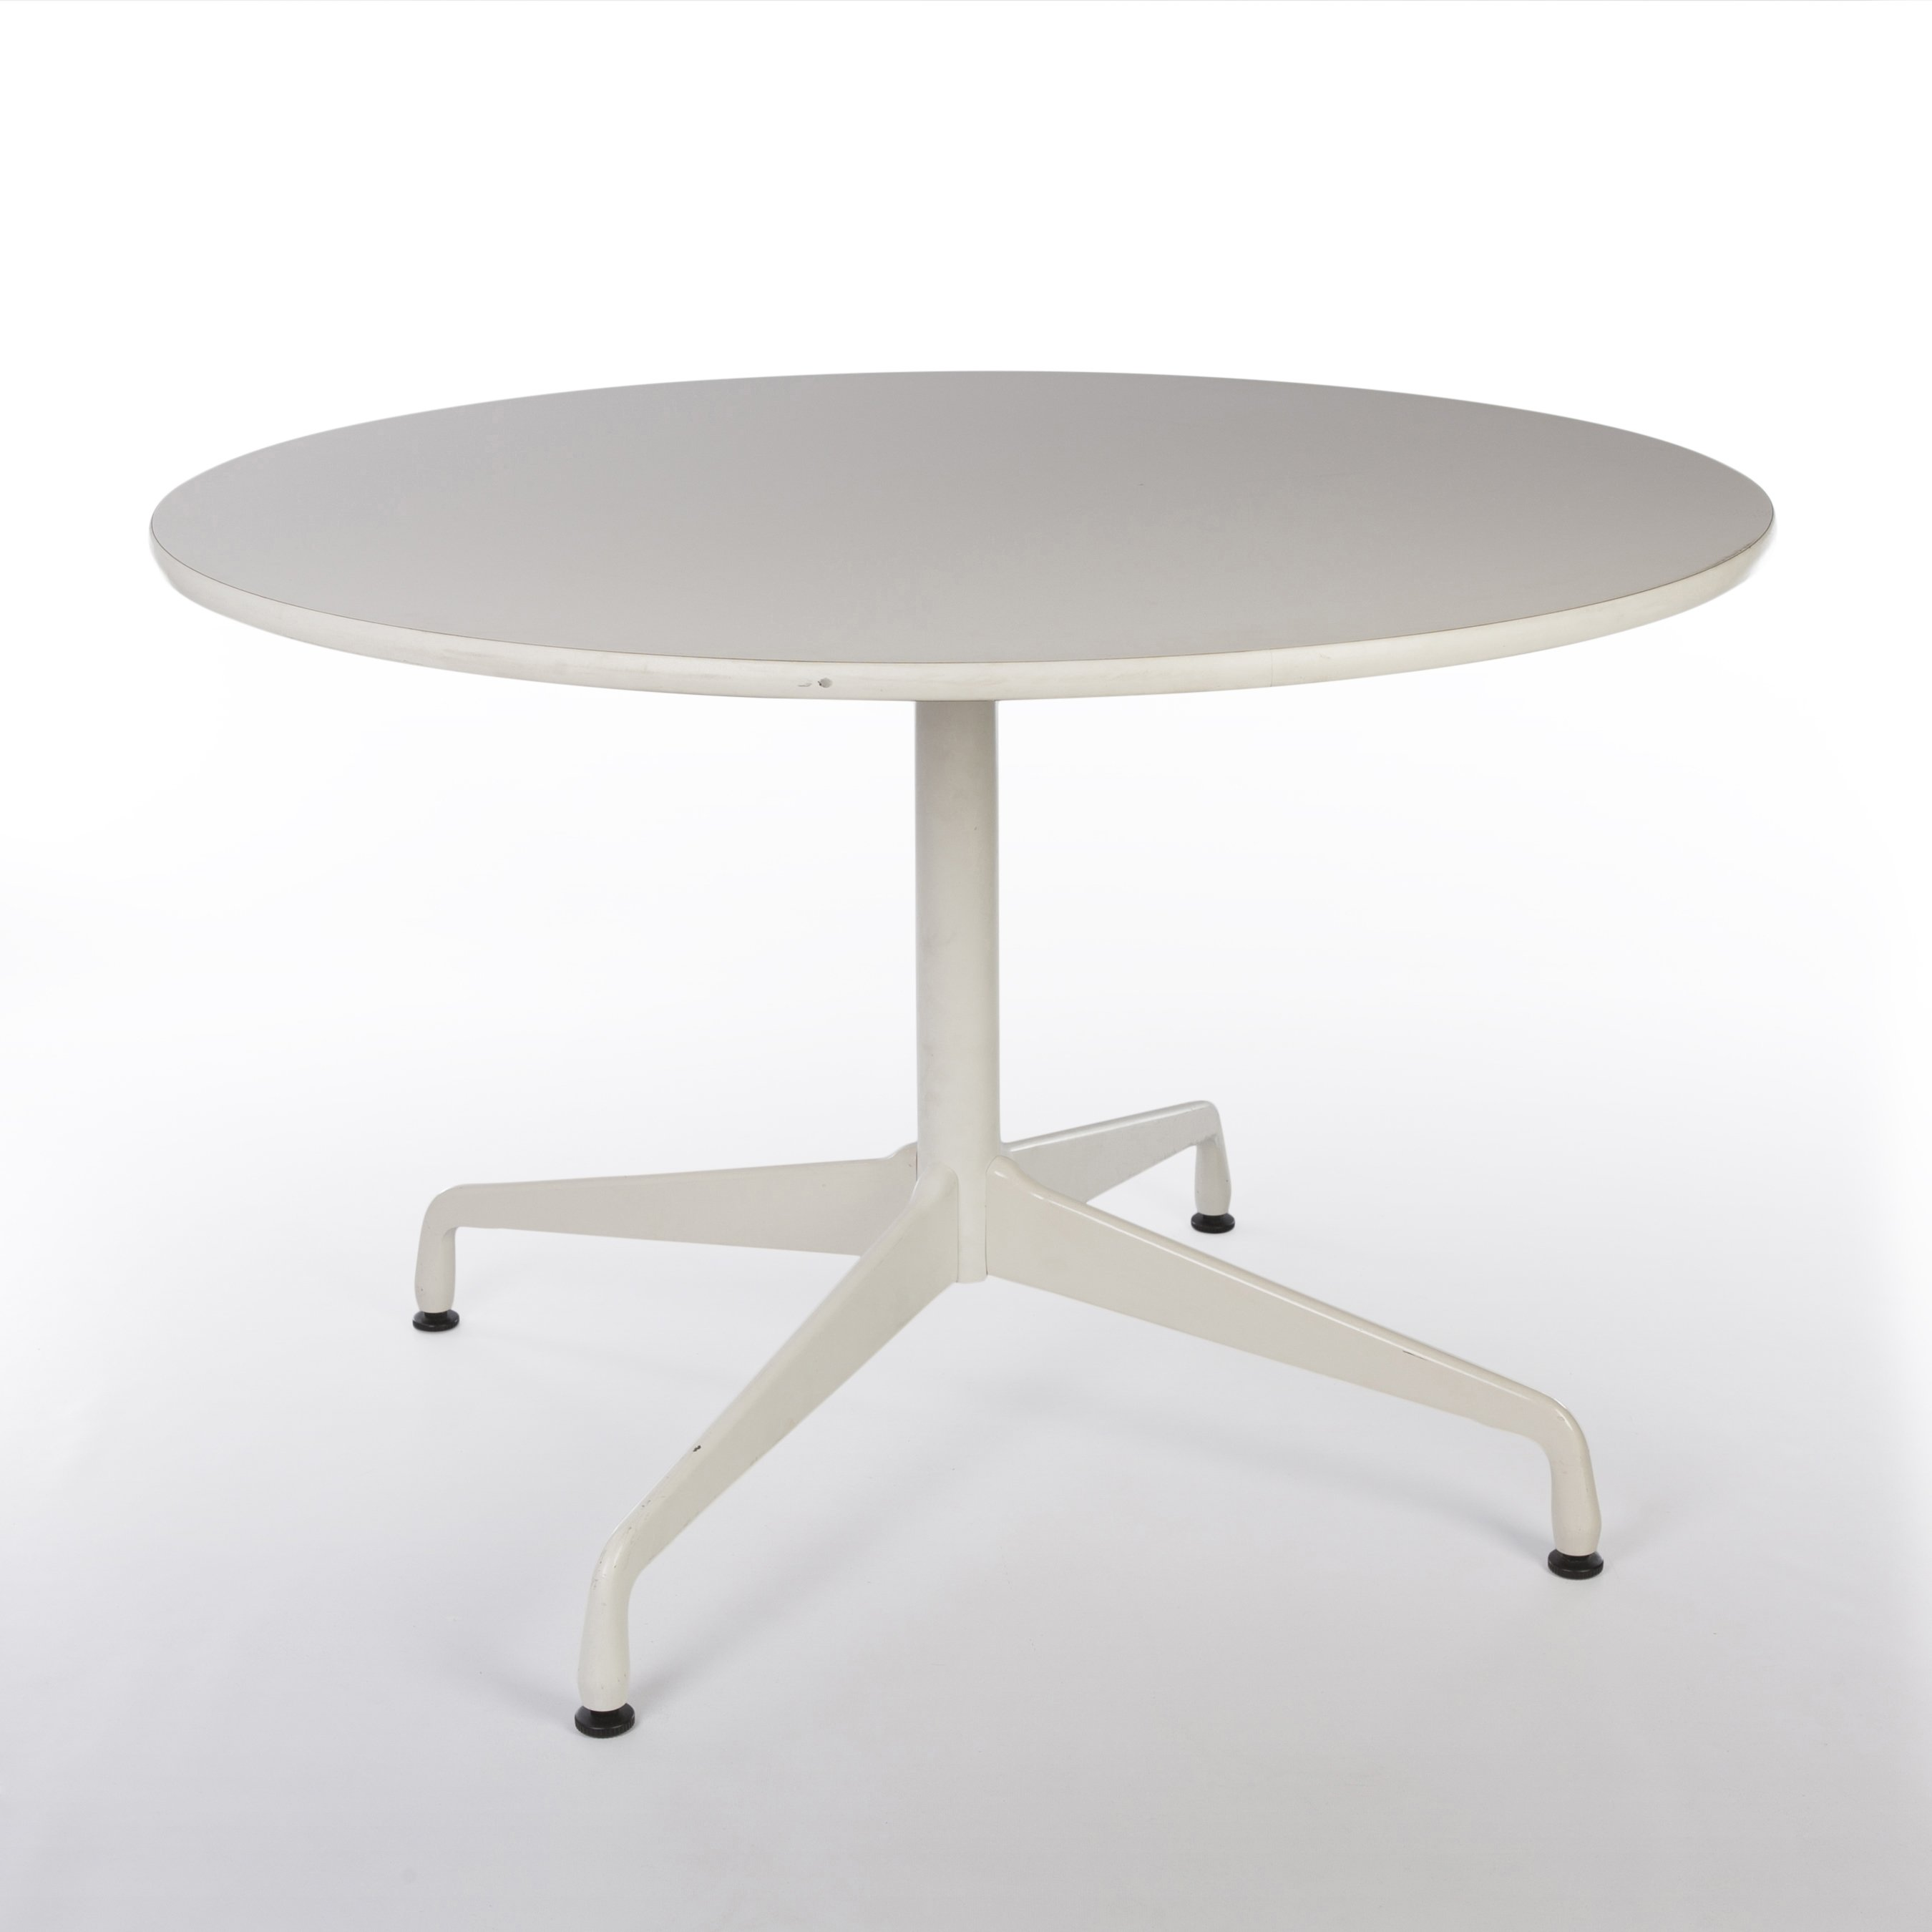 original herman miller white eames round contract table 78473. Black Bedroom Furniture Sets. Home Design Ideas